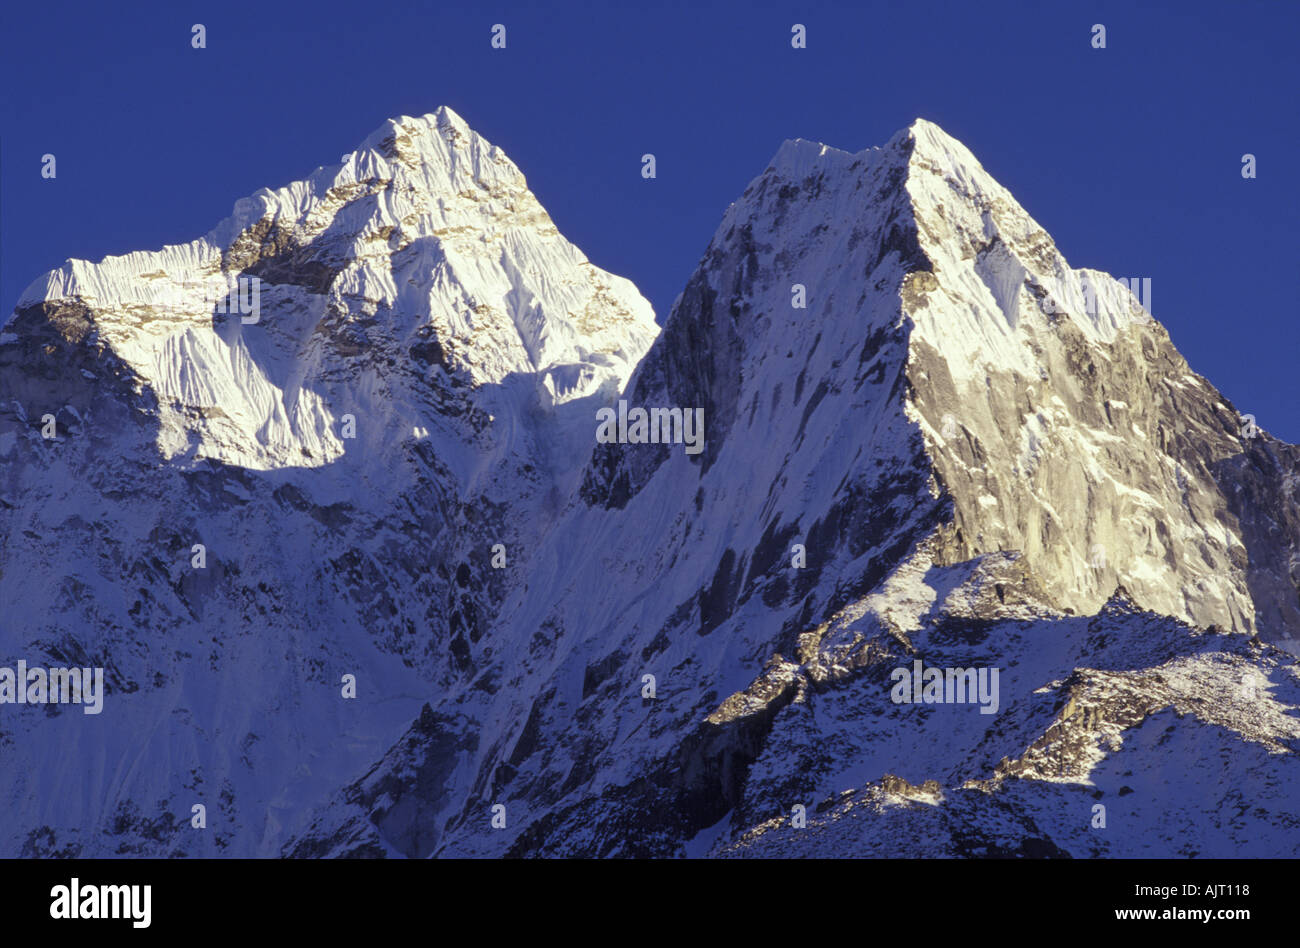 https://c8.alamy.com/comp/AJT118/two-mountain-peaks-khumbu-himalayas-nepal-AJT118.jpg